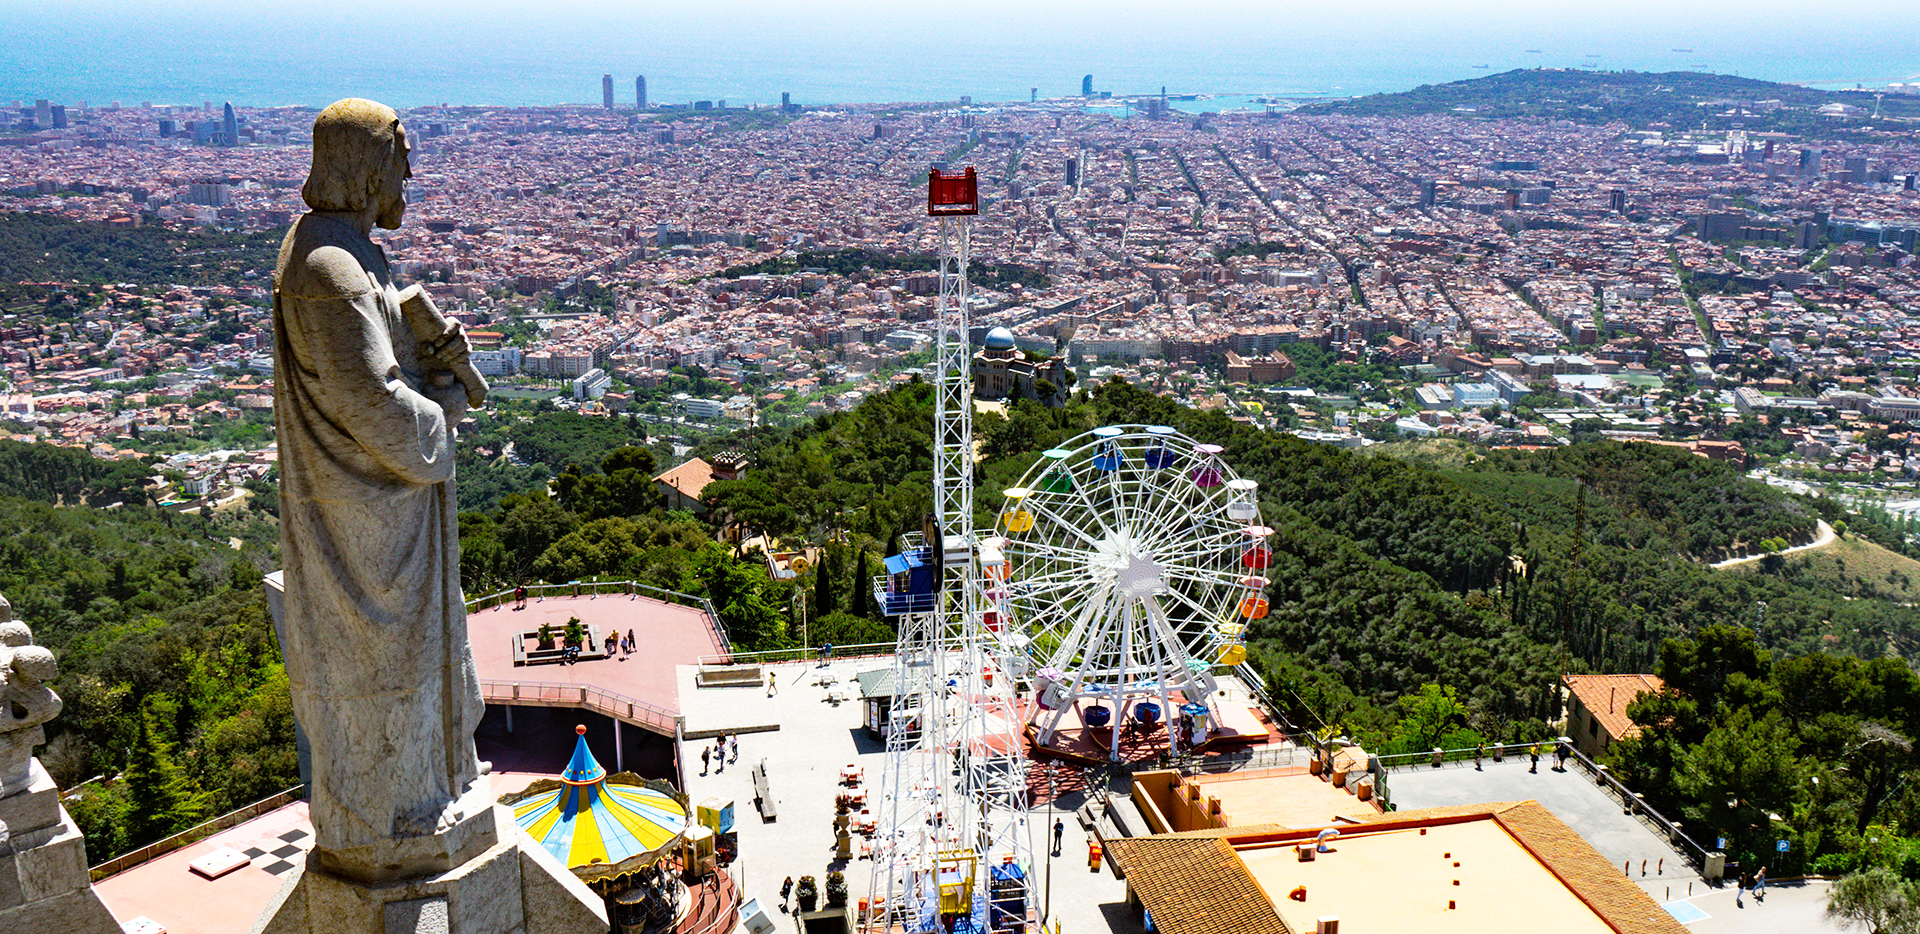 View from Tibidabo Church Balcony